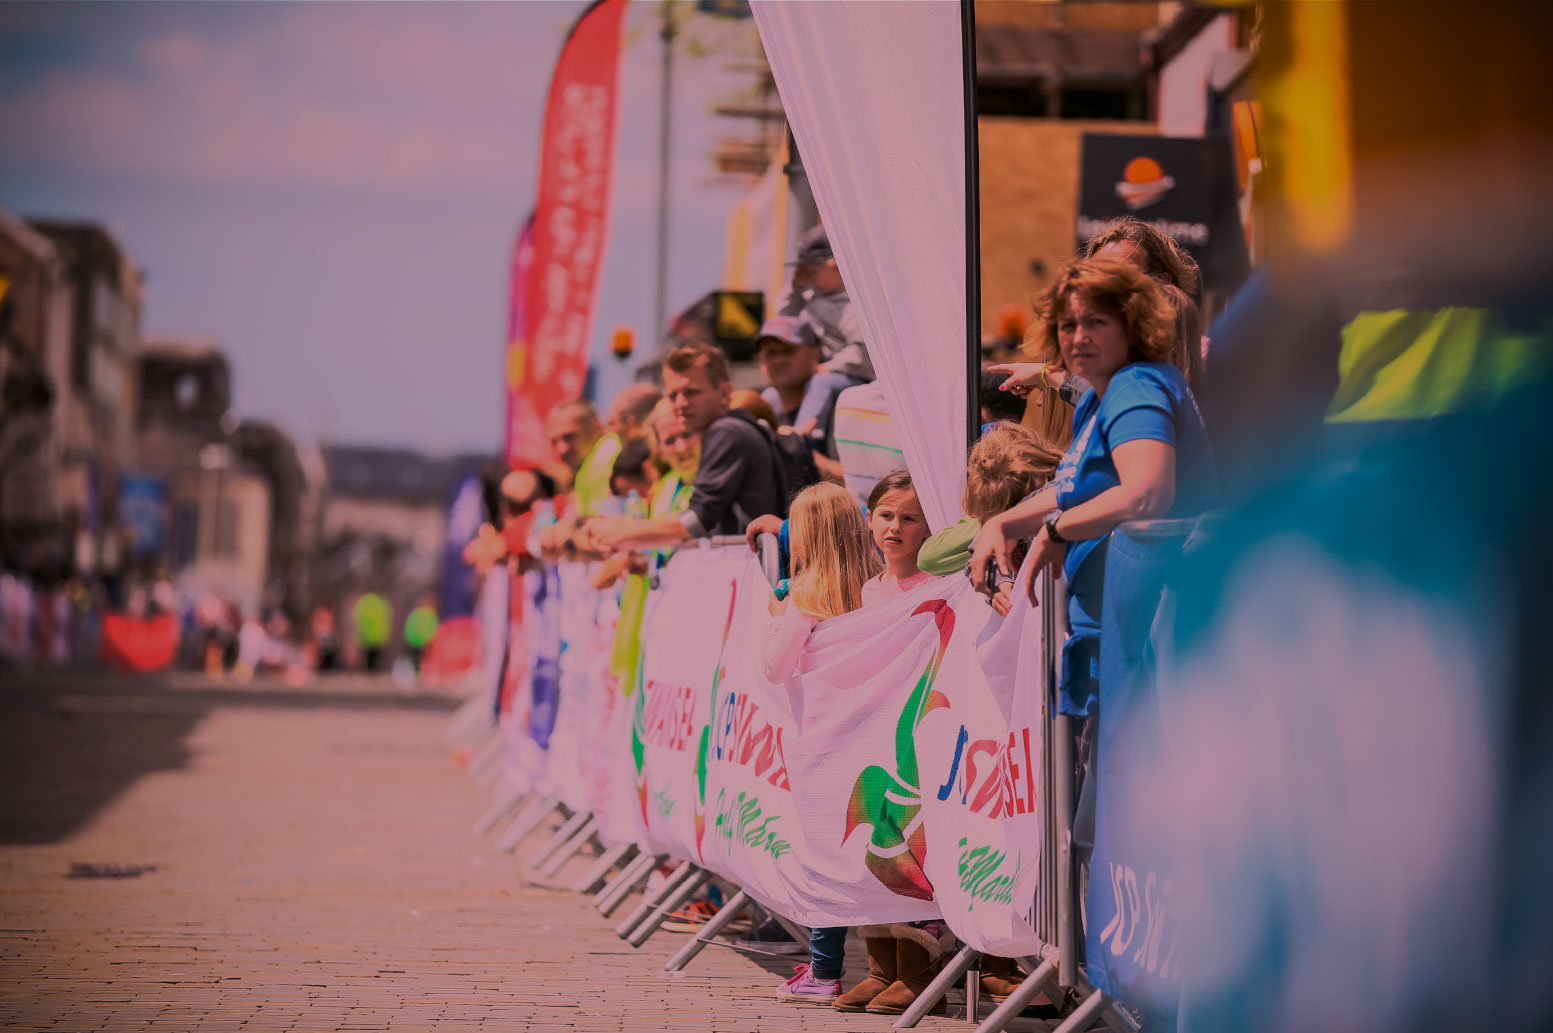 KEEPING UP WITH THE JONESES?  THEN YOU BETTER LACE UP & ENTER THE JCP SWANSEA HALF MARATHON THIS JUNE